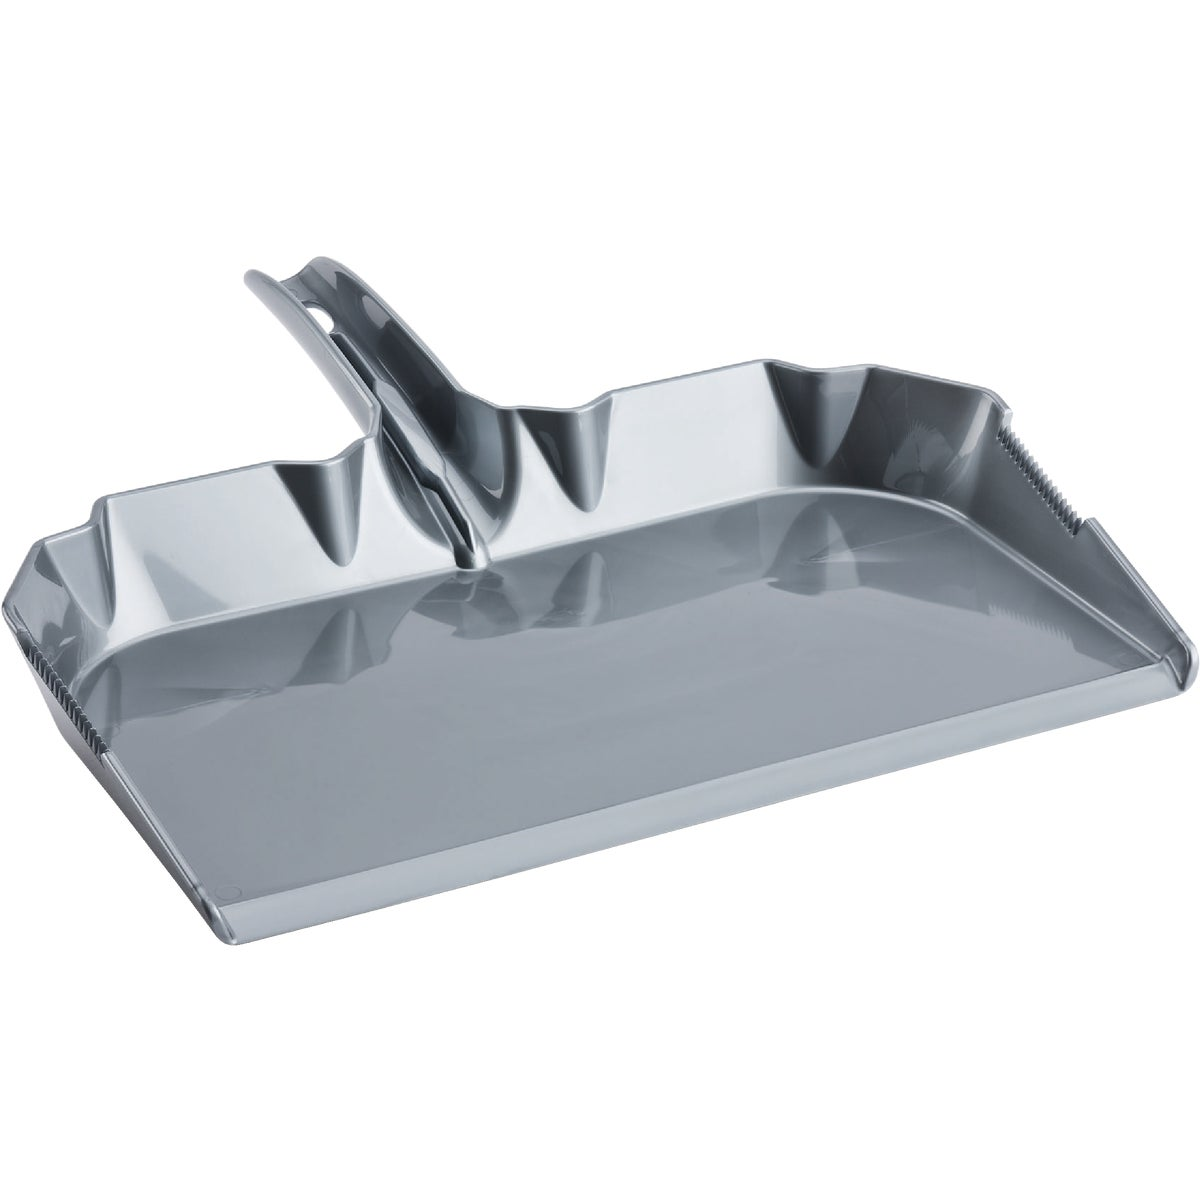 INDUSTRIAL GRADE DUSTPAN